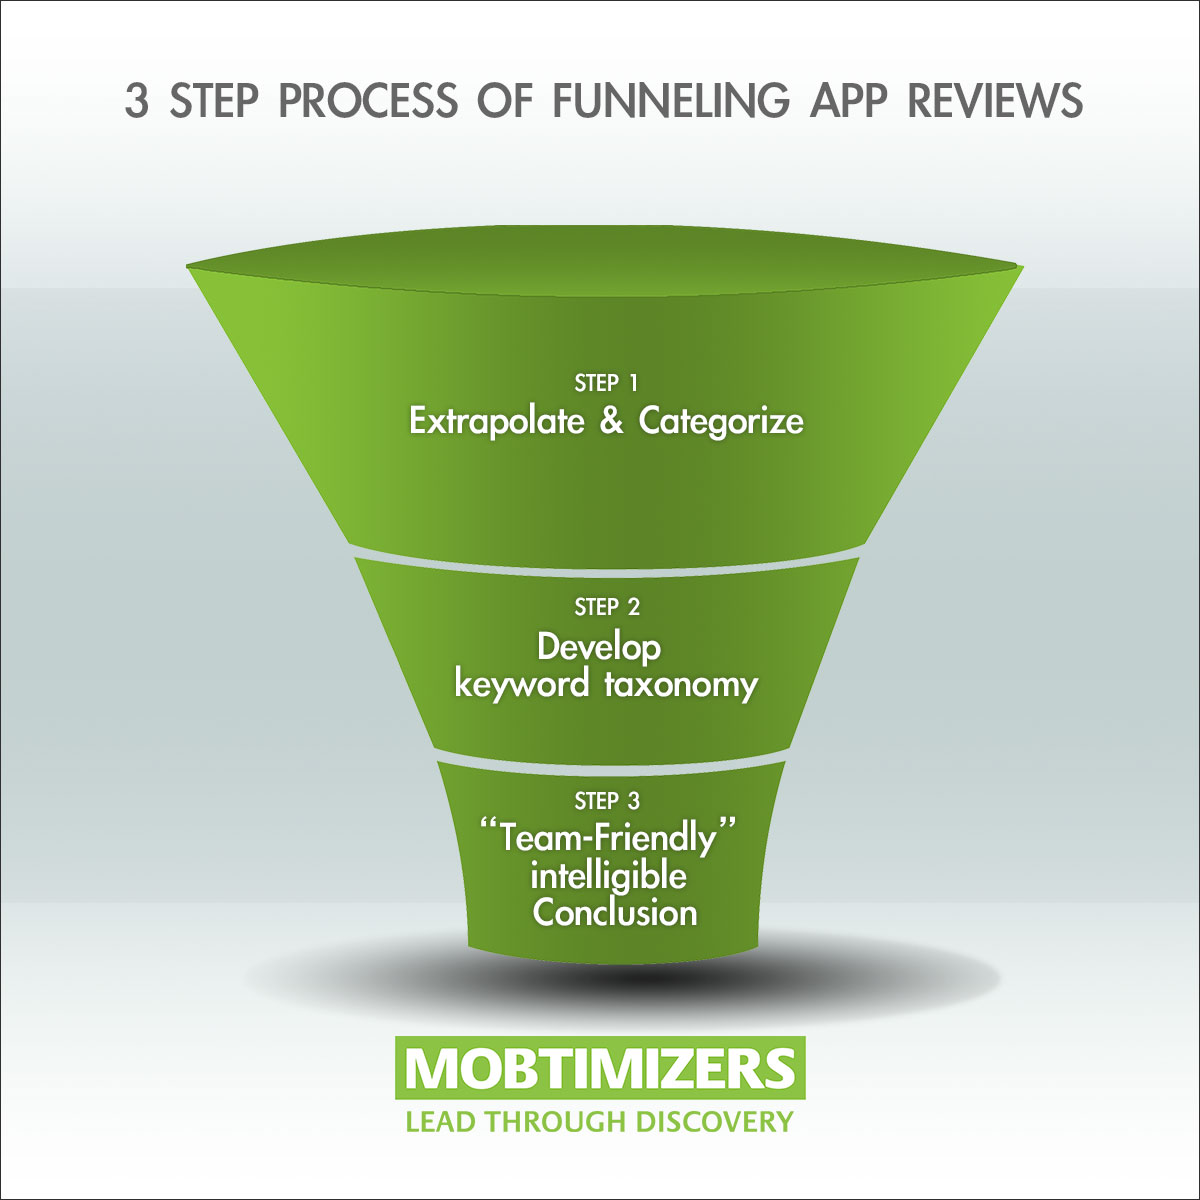 The 3 step process of funneling app reviews.